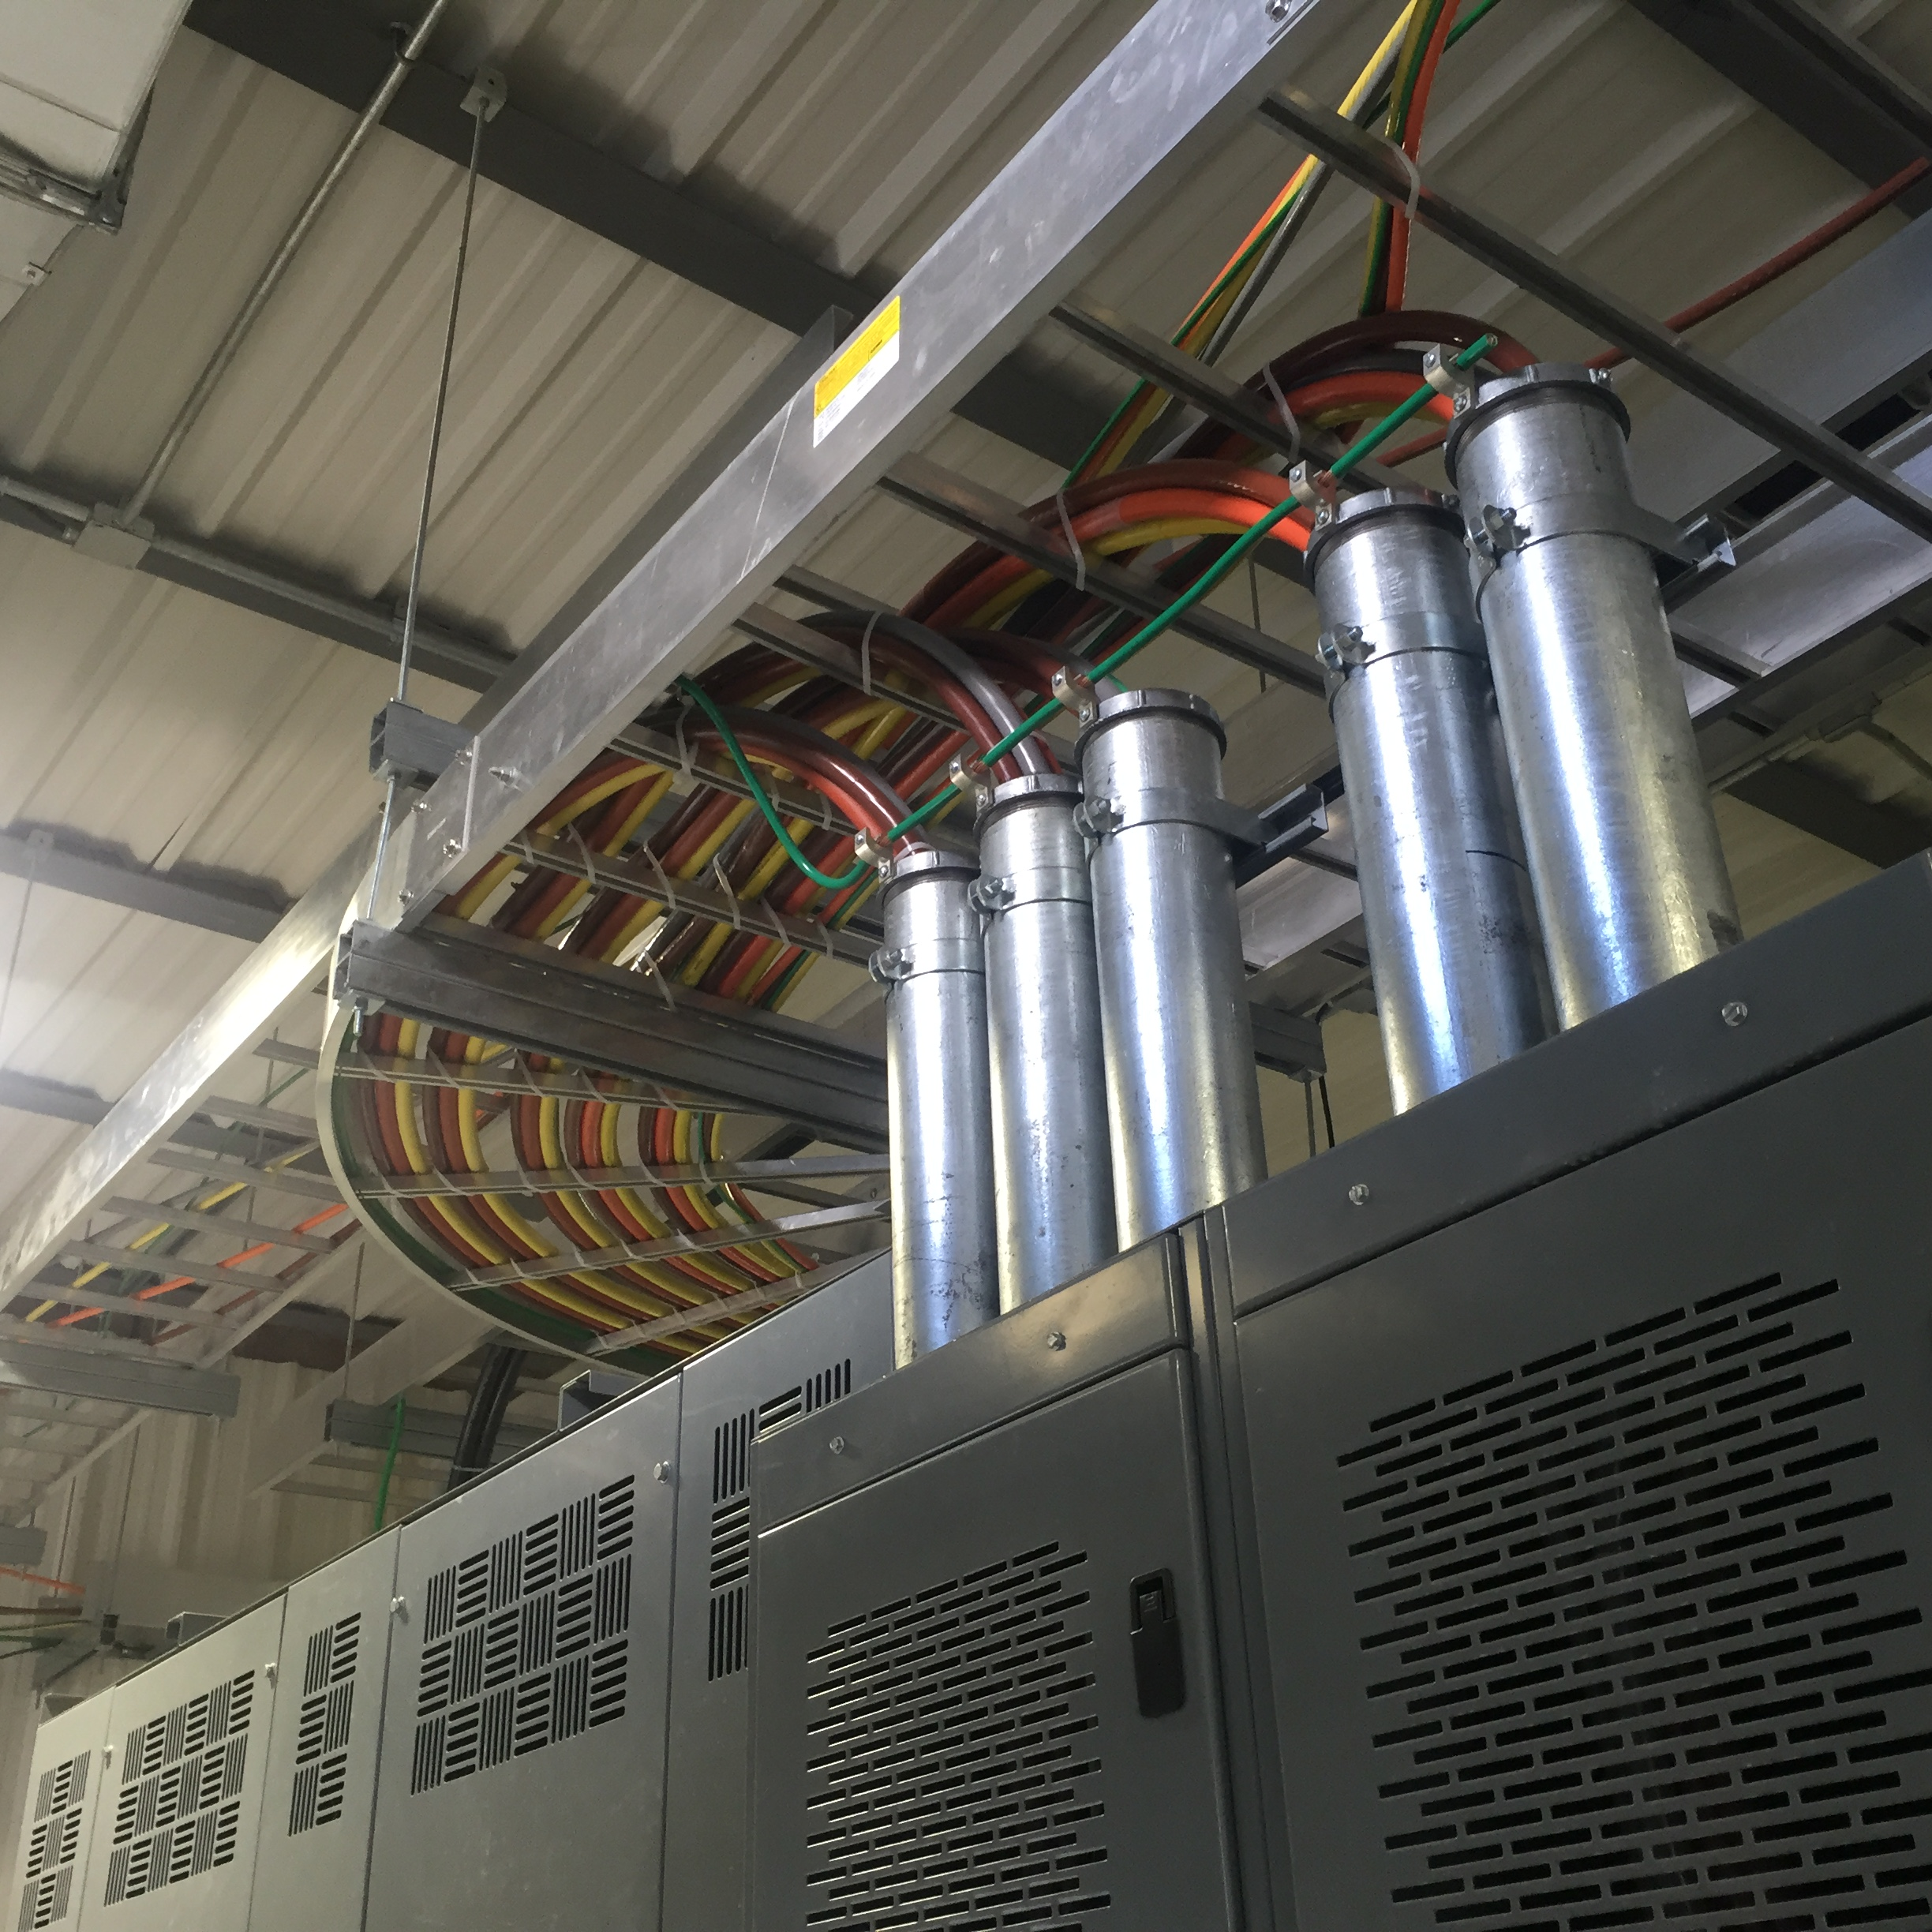 Industrial Electrical Solutions - Our industrial electrical team has extensive knowledge and expertise to successfully complete large, complex industrial electrical installations for a variety of applications.